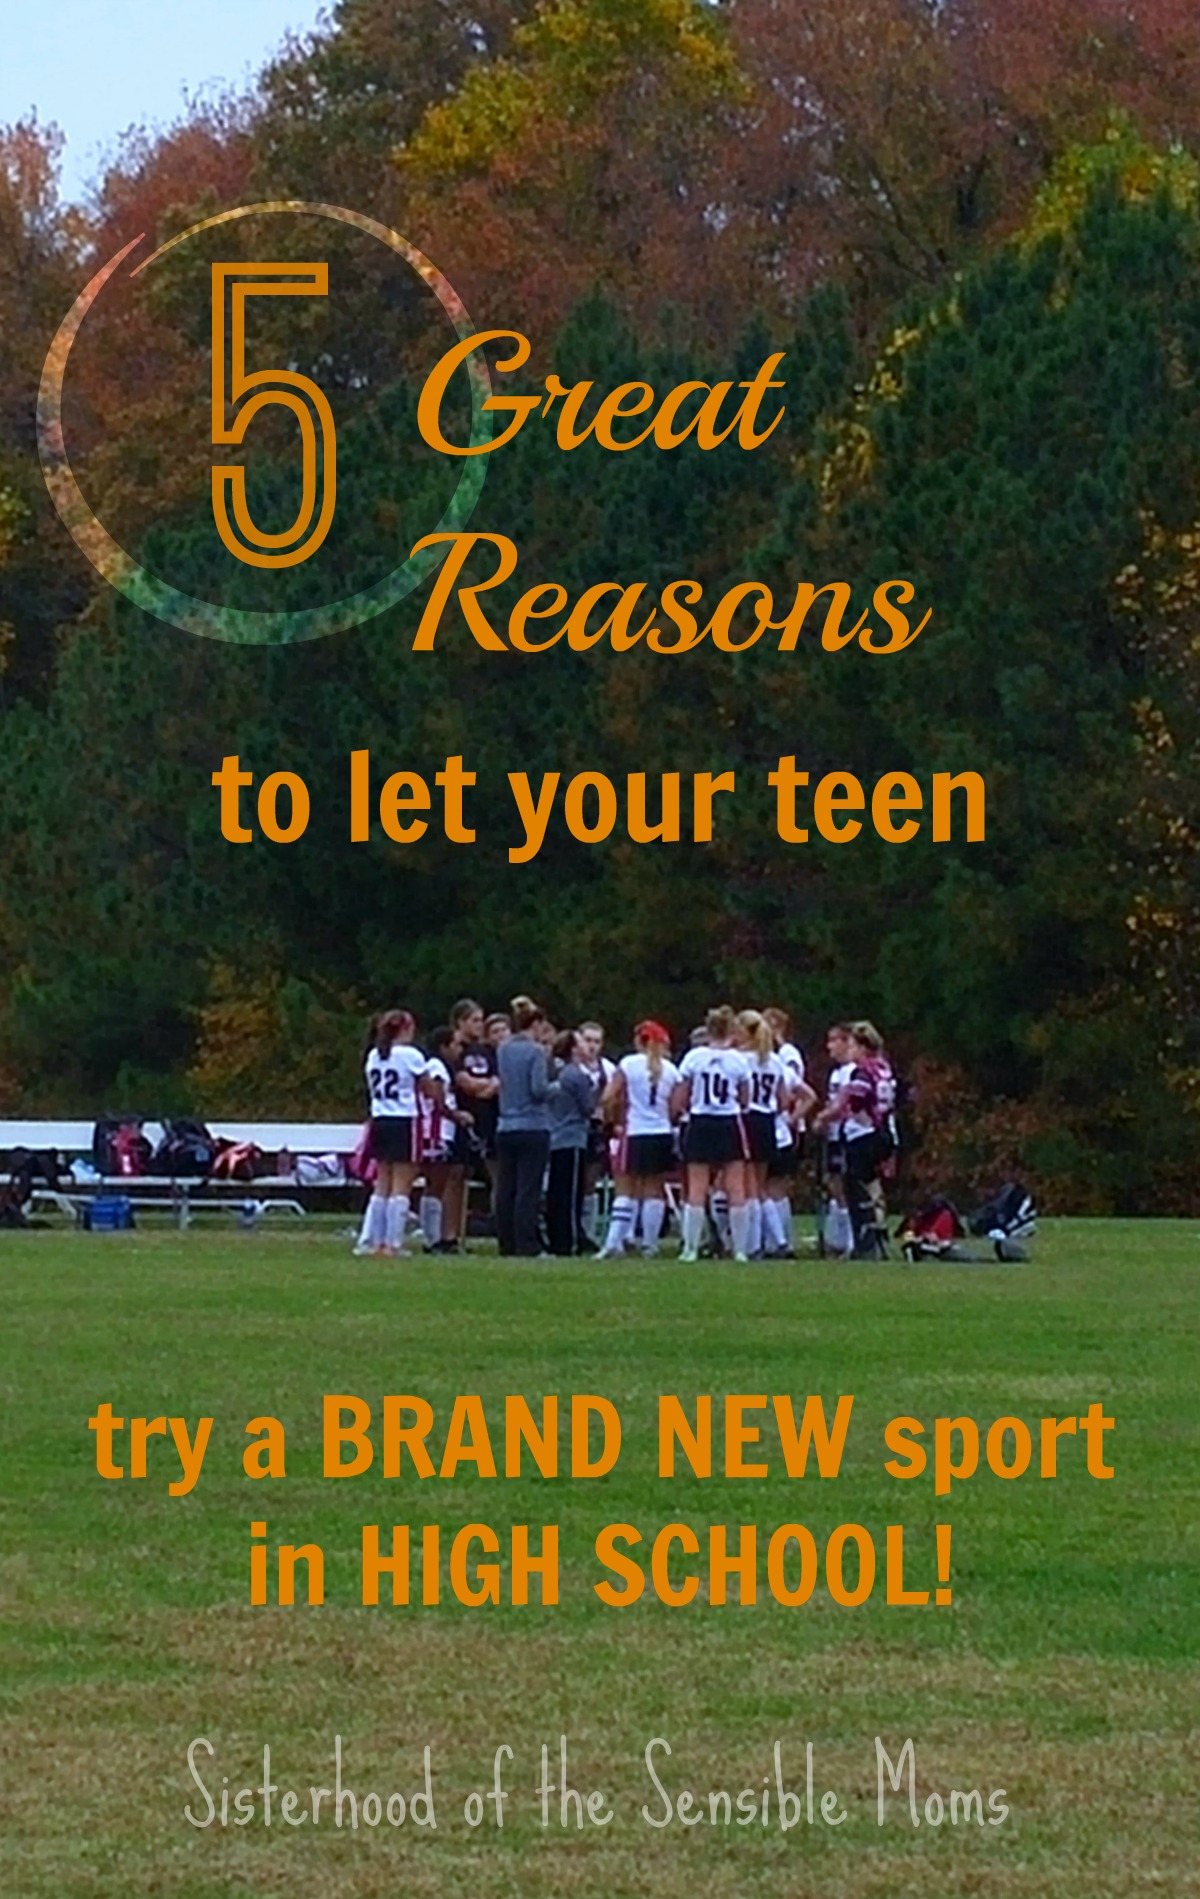 5 Reasons Why There's More to High School Sports Than Scholarships. Sure sports can be about the big college pay-off, but there's much more to universally value about high school sports than just scholarships. | Parenting Advice | Teens | Sisterhood of the Sensible Moms